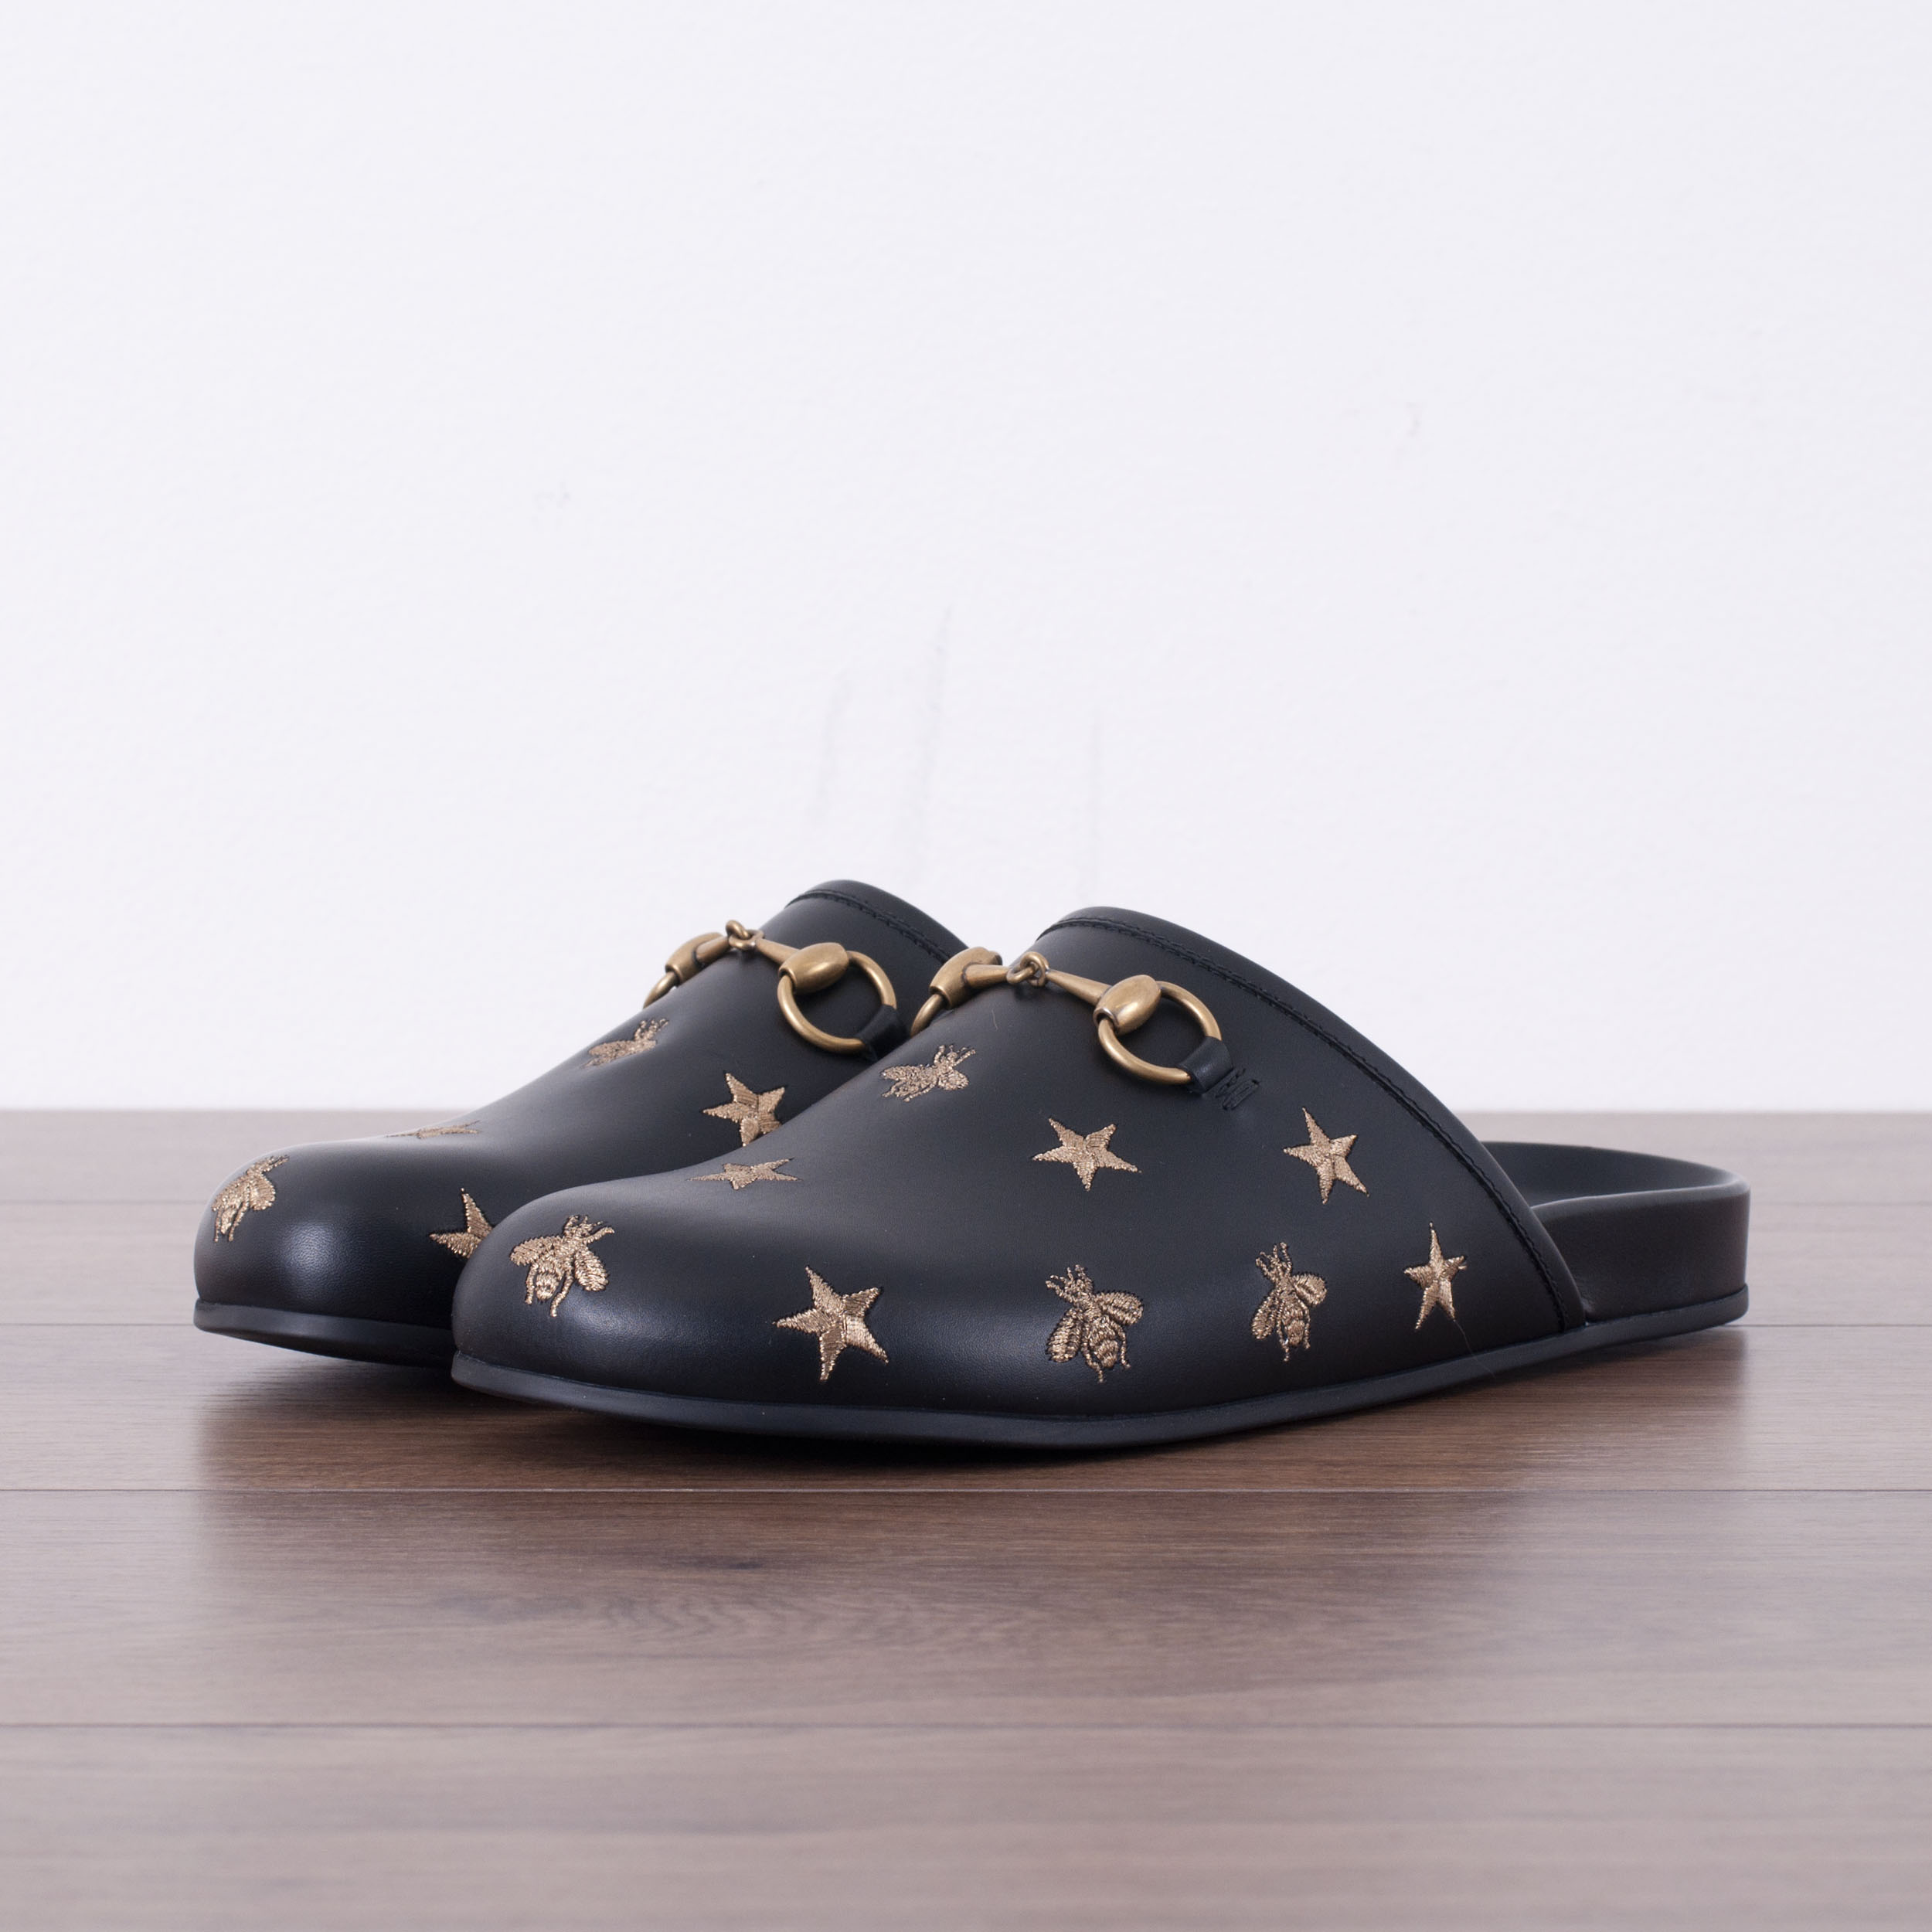 bb1ff86c2bf51 Details about GUCCI 695$ Authentic New Horsebit Embroidered Leather Slipper